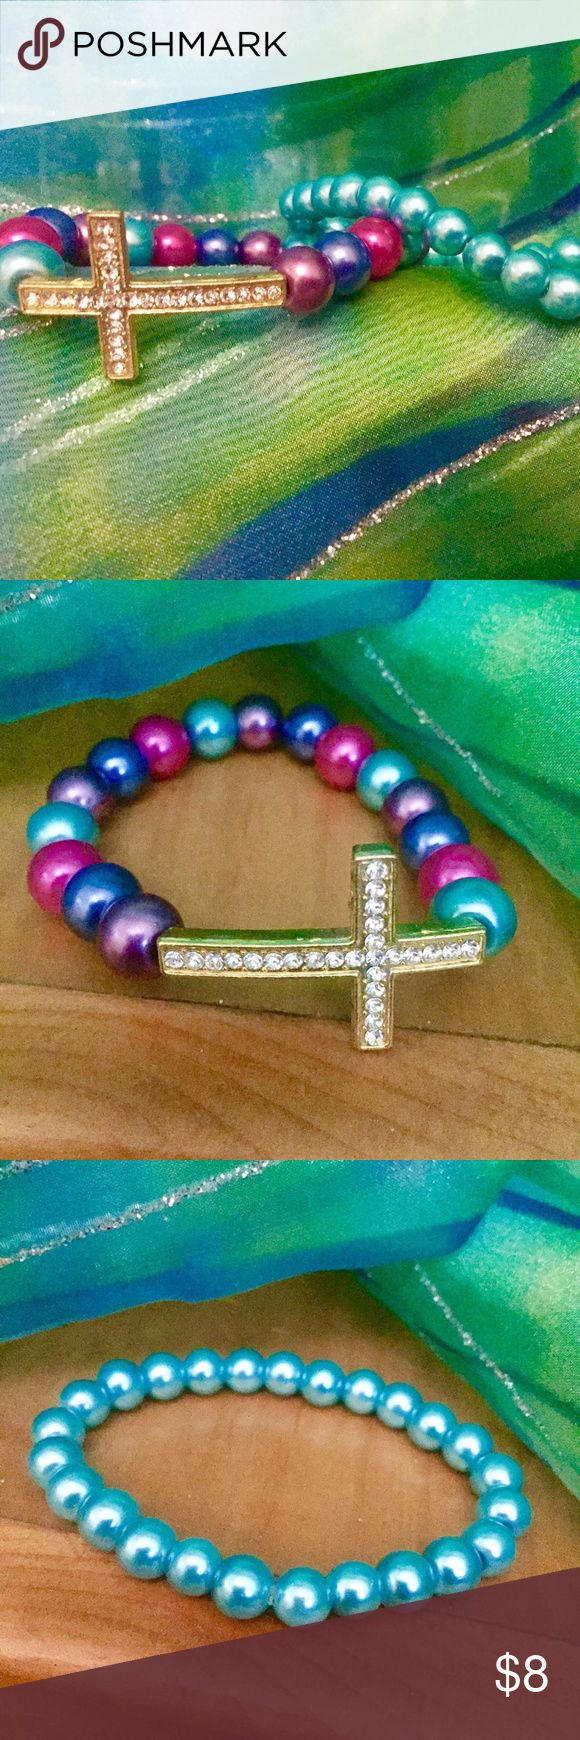 New Multi Color Bead Cross Bracelet set New Multi Color Bead Cross Bracelet set.  Bracelet has a cross with clear stones and pink, blue, purplish and teal beads. Second bracelet is all teal beads. Bracelets are stretchable Jewelry Bracelets